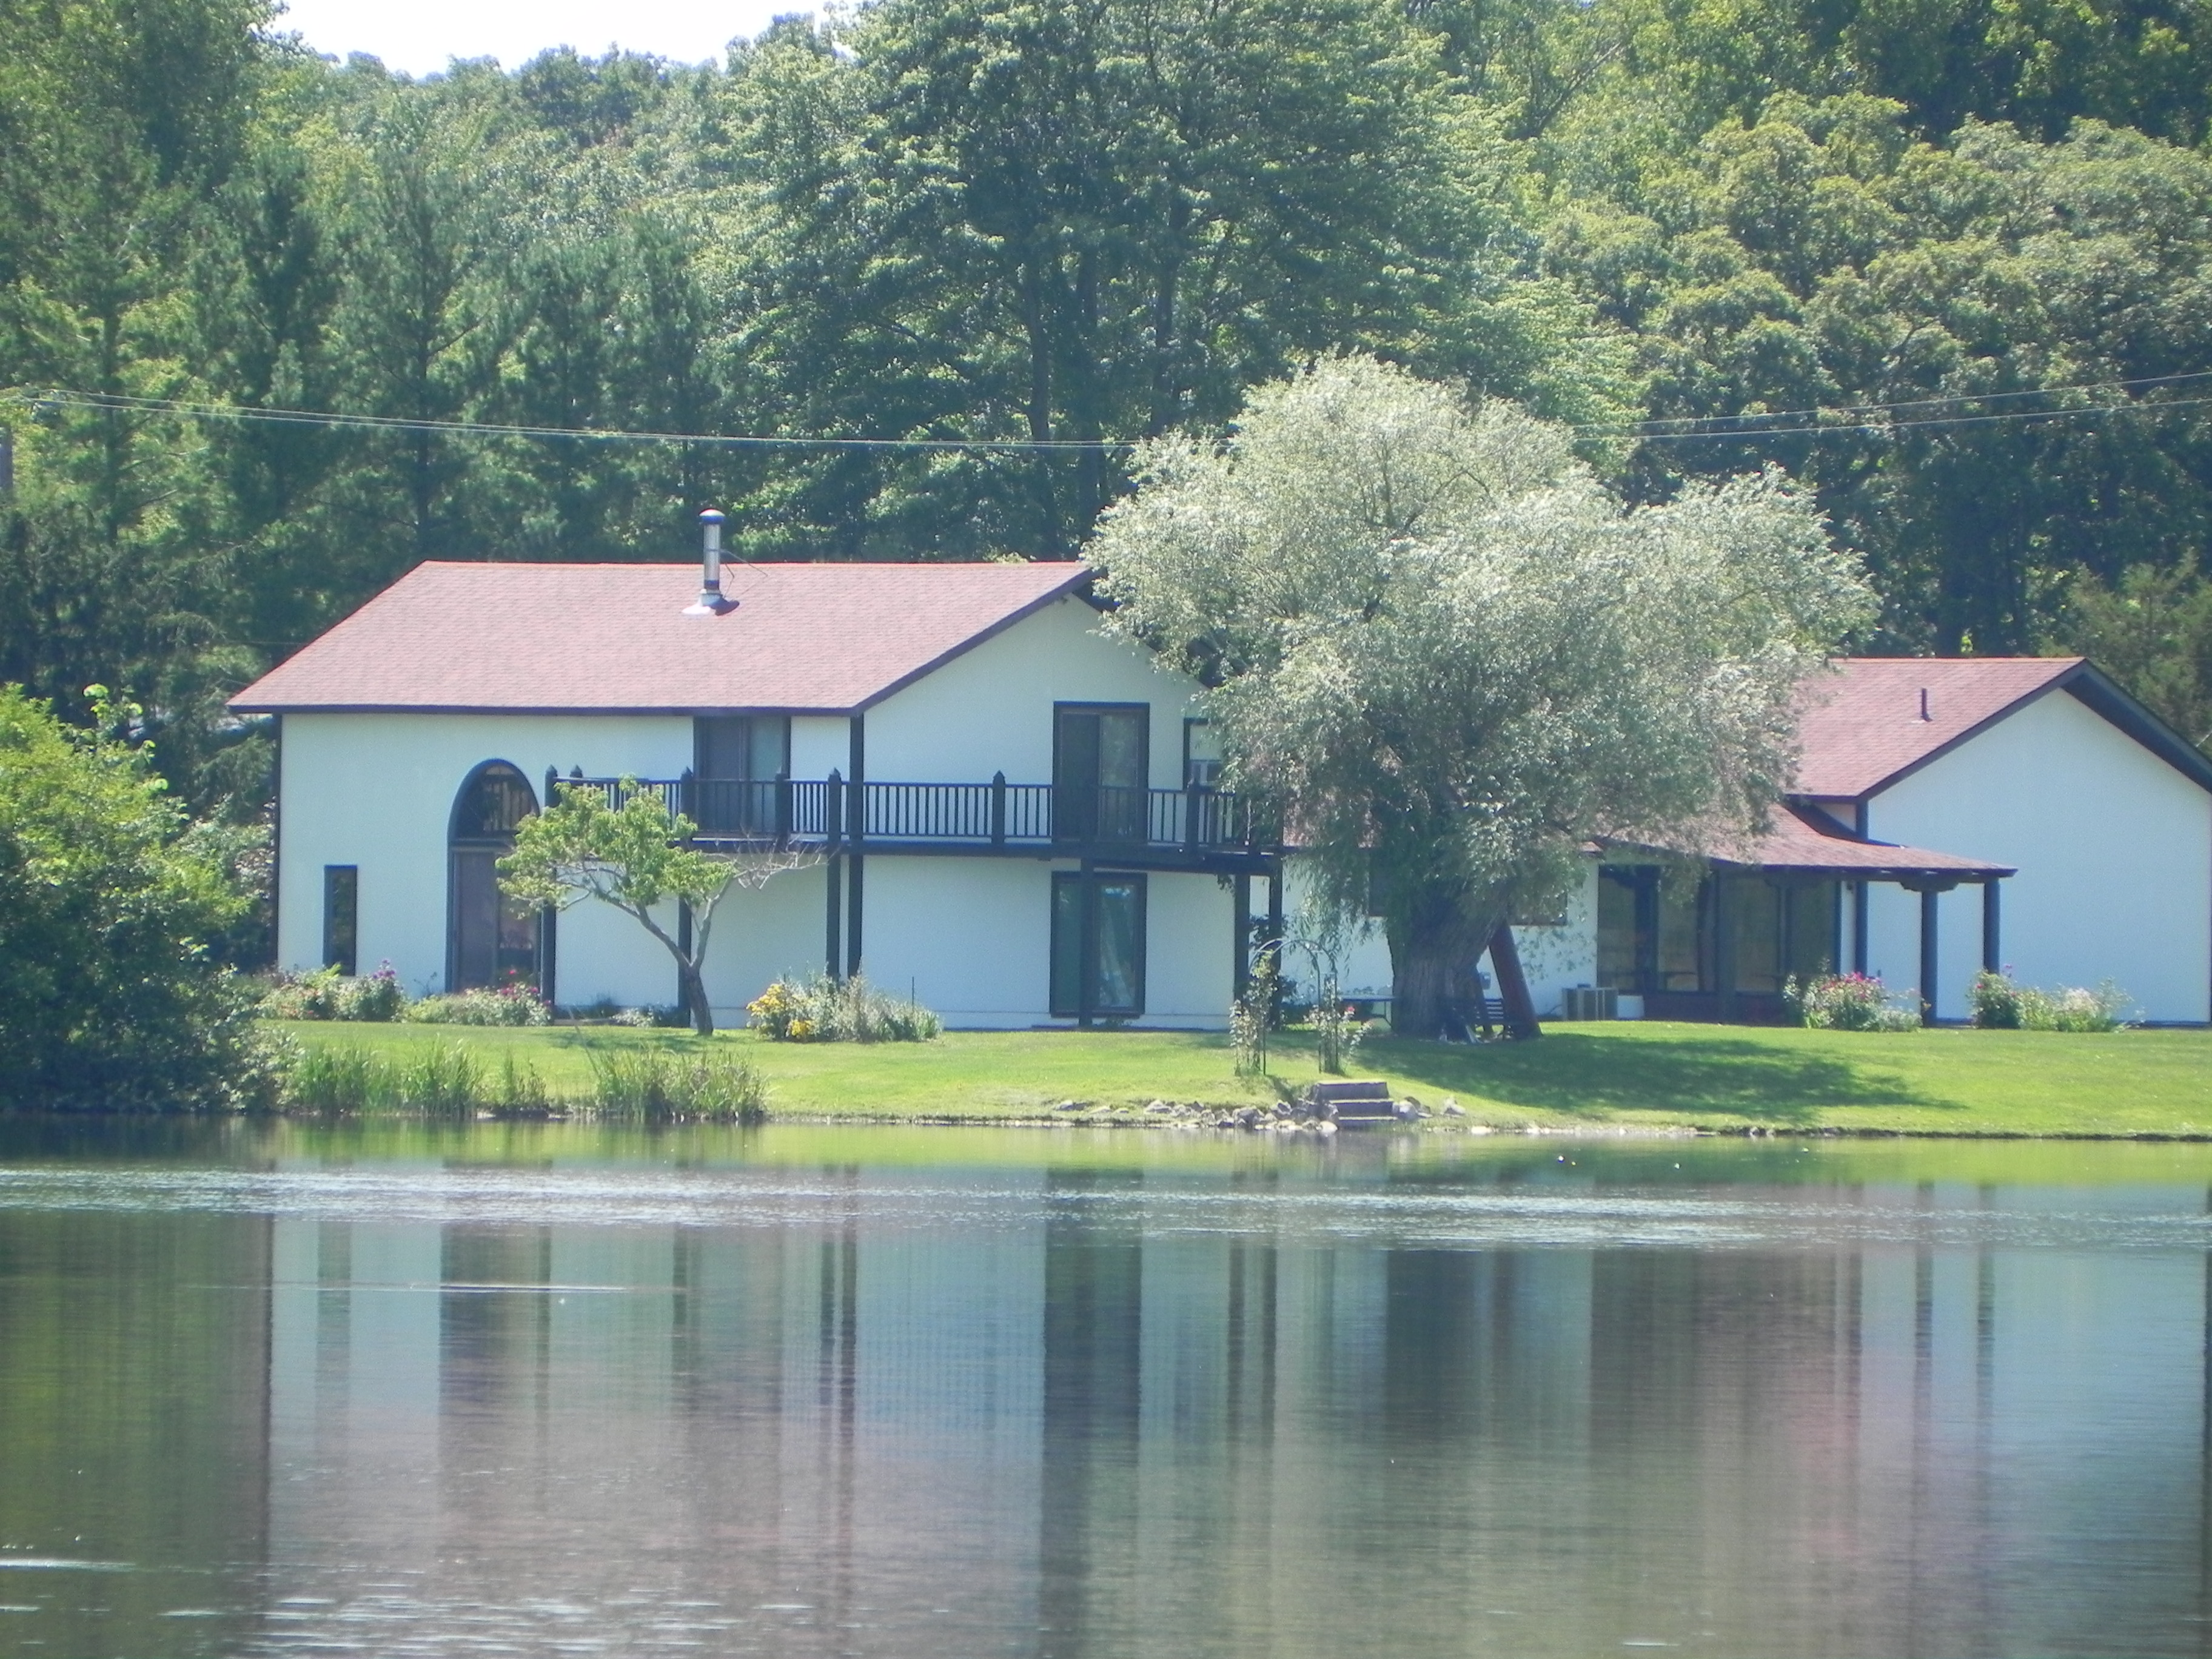 Michigan oakland county franklin - Oakland County Lake Homes For Sale